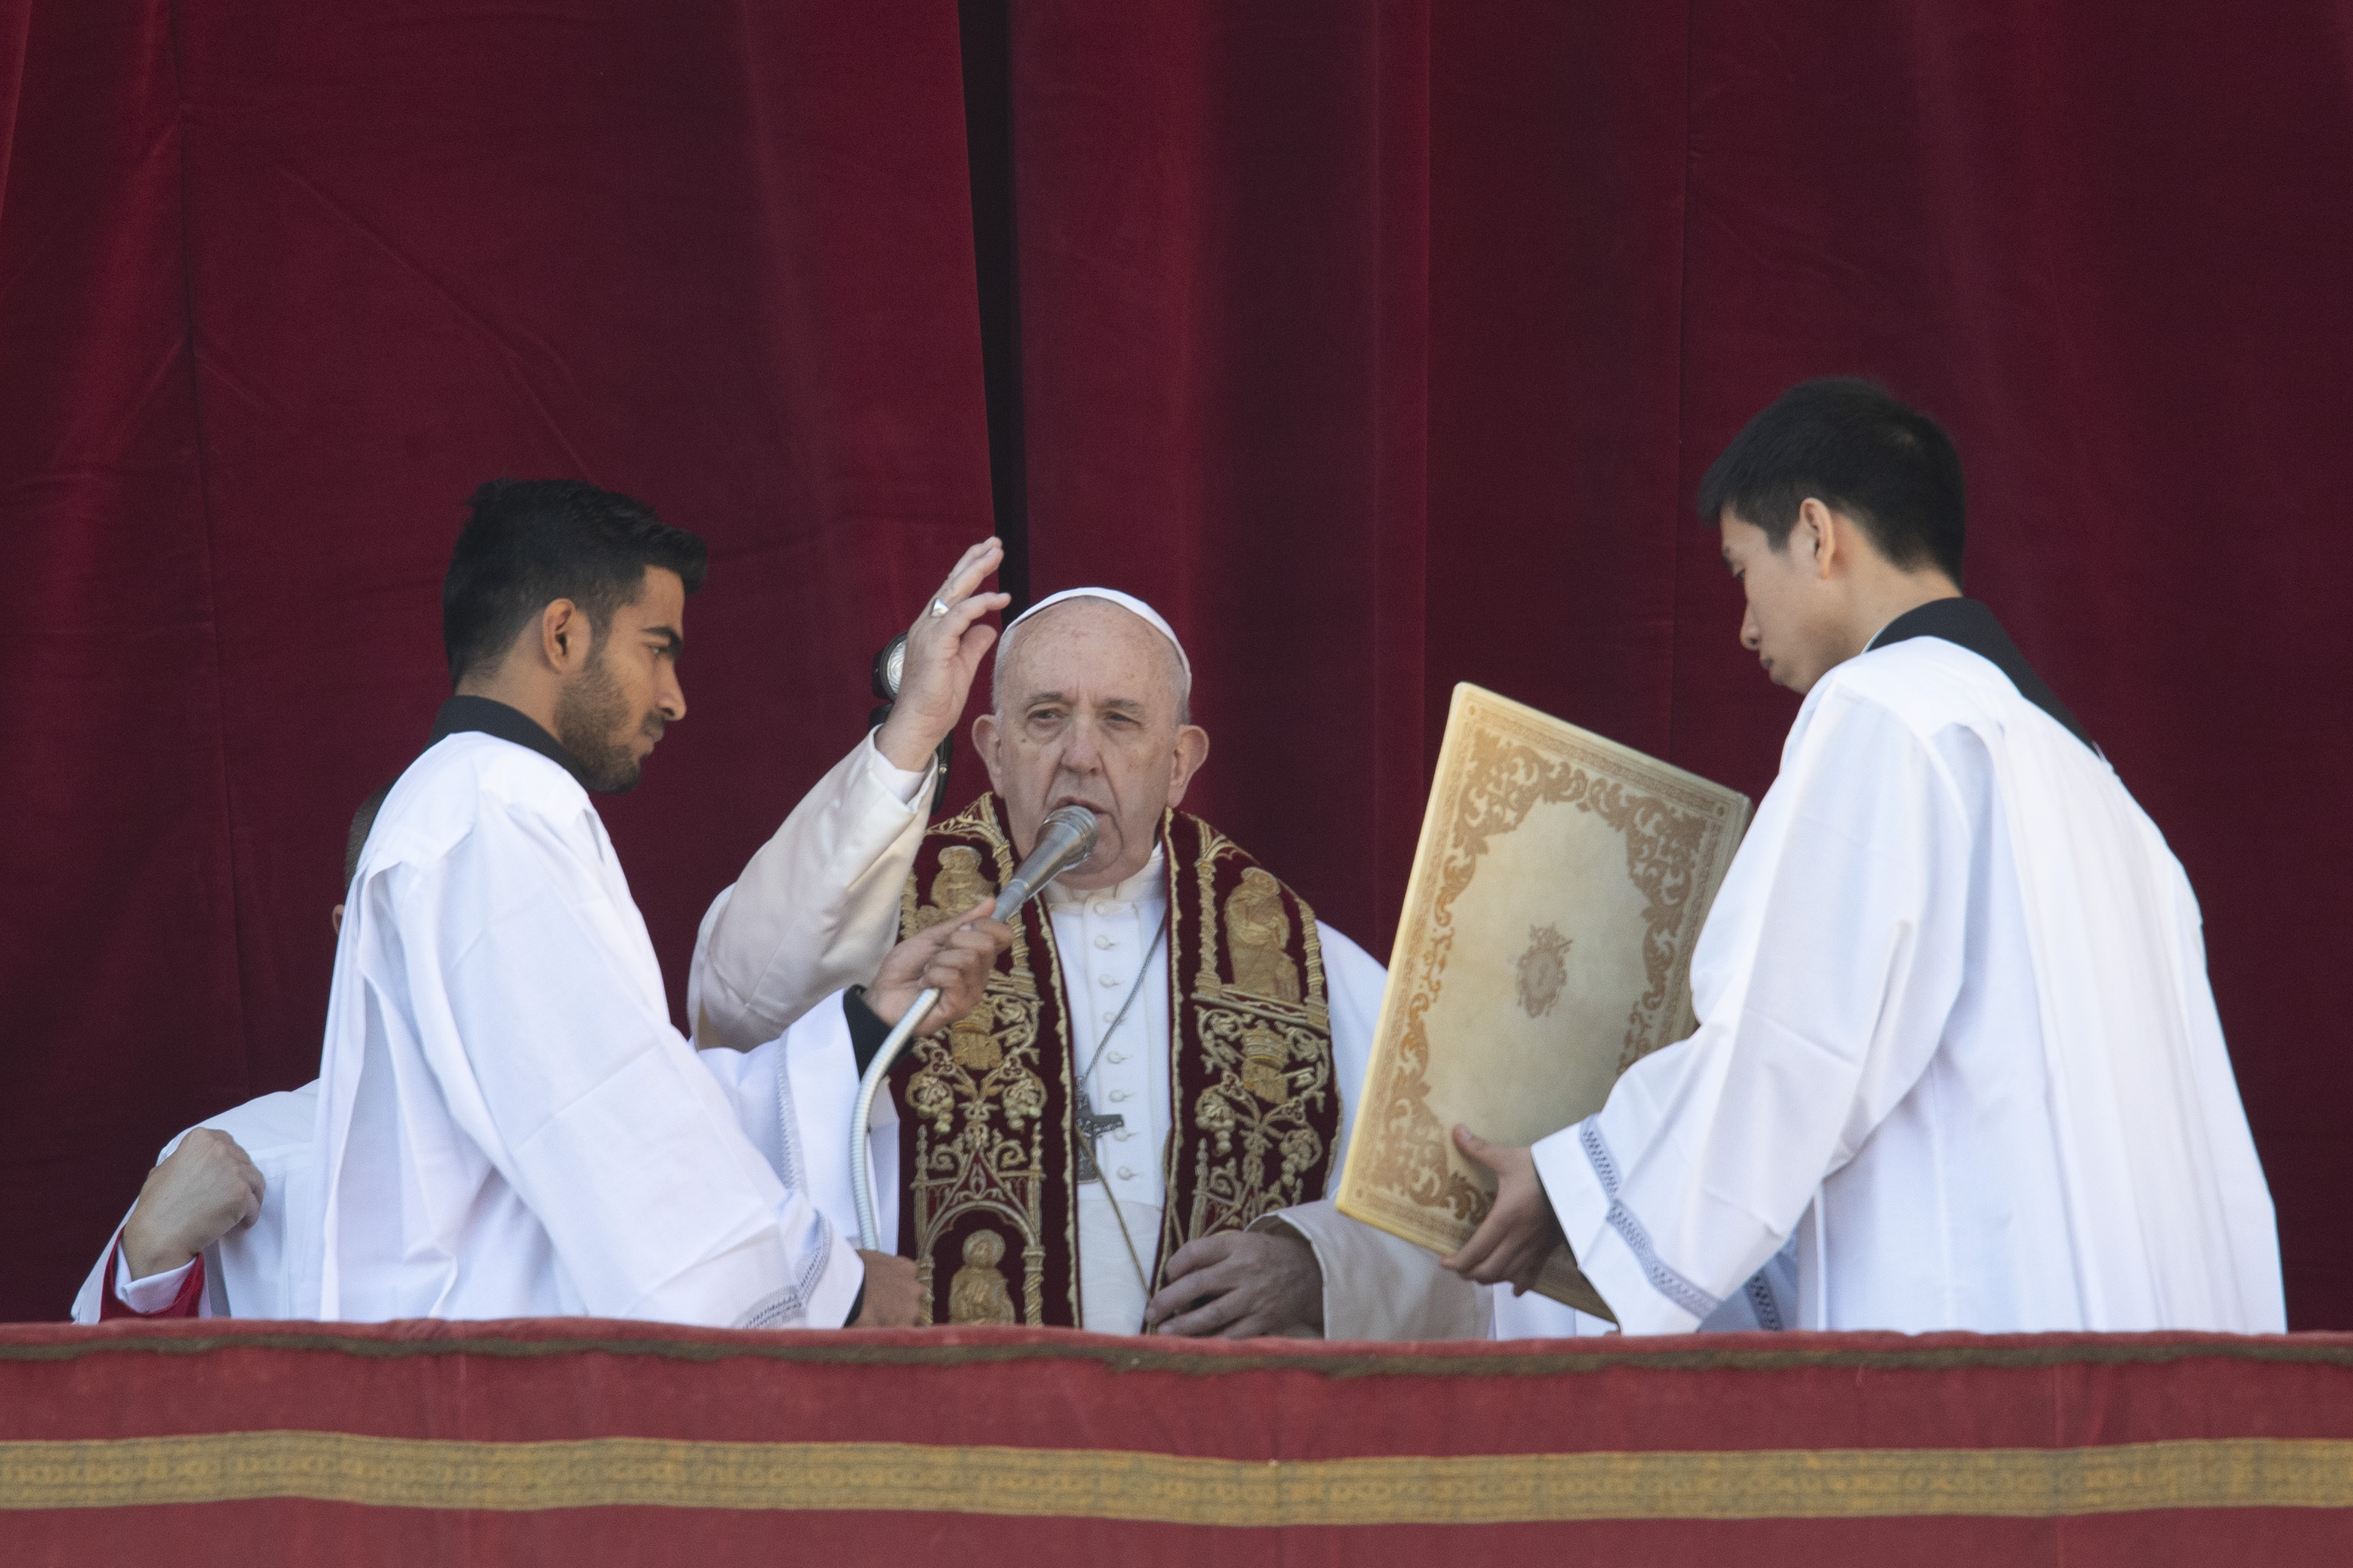 Pope offers hope against darkness in Christmas Day message